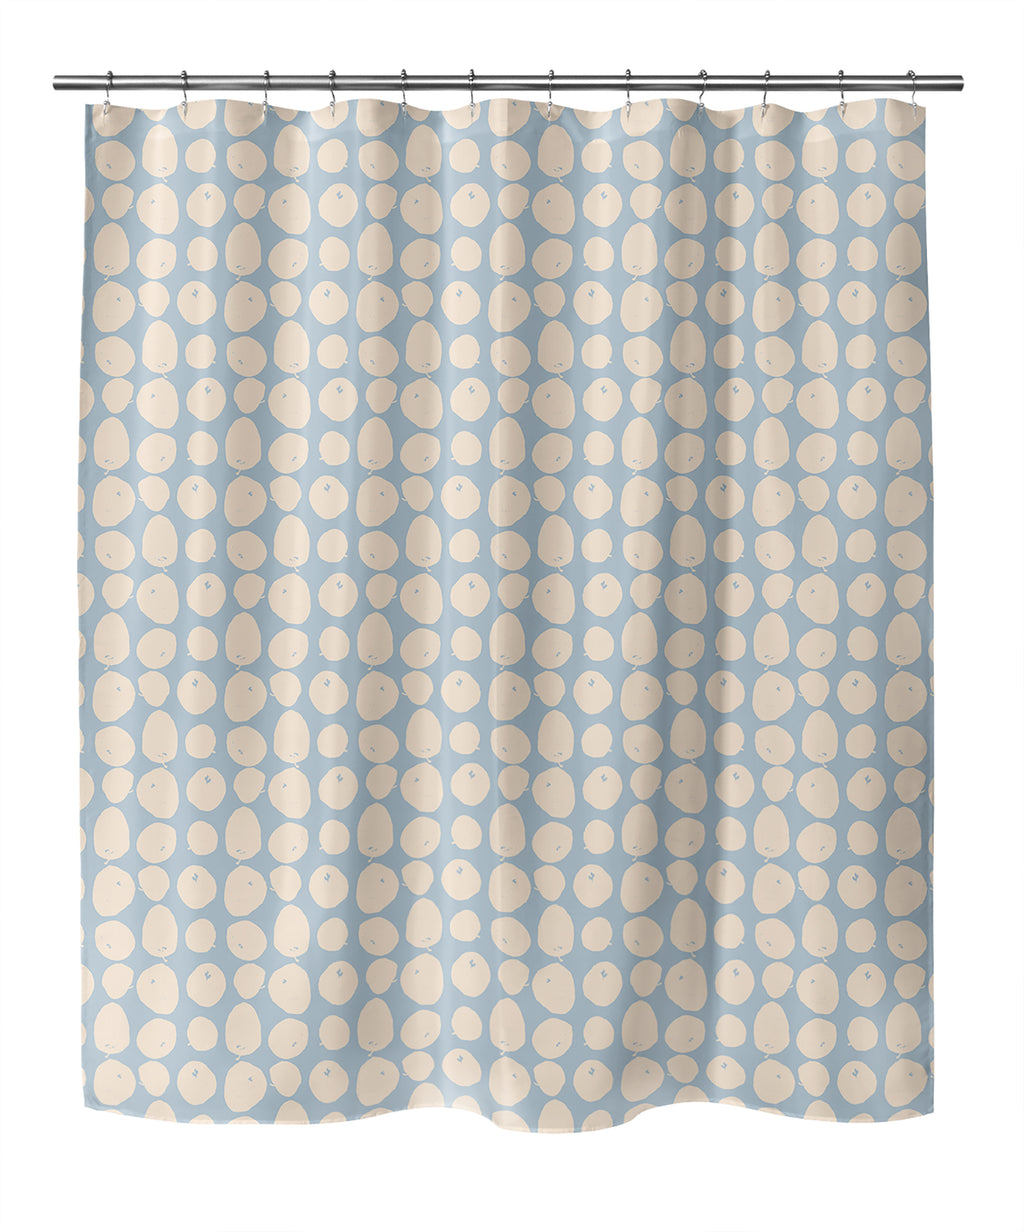 APPLES PEACH Shower Curtain By Hope Bainbridge